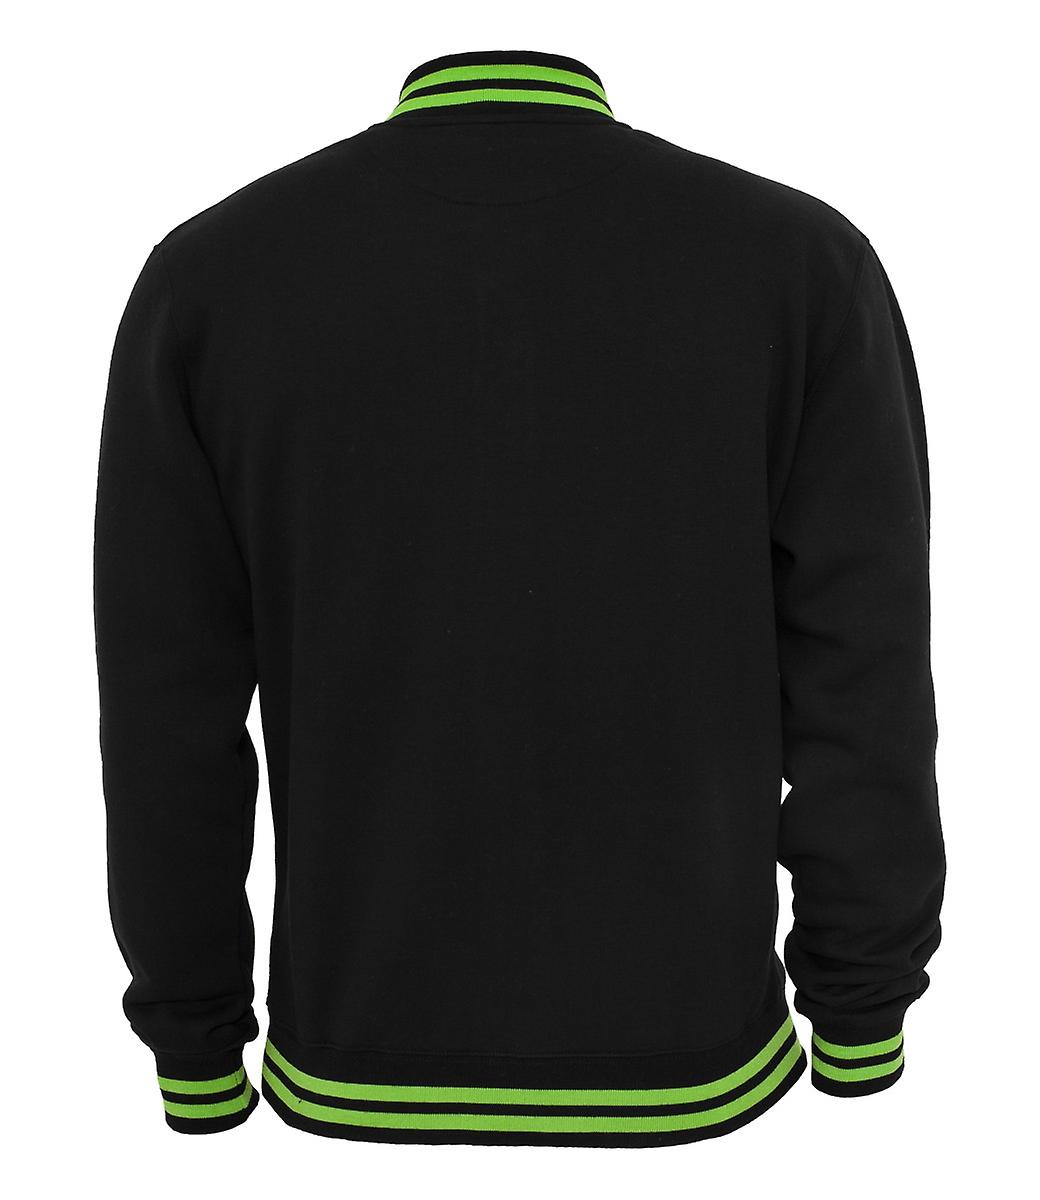 Urban classics contrast College Sweatjacket